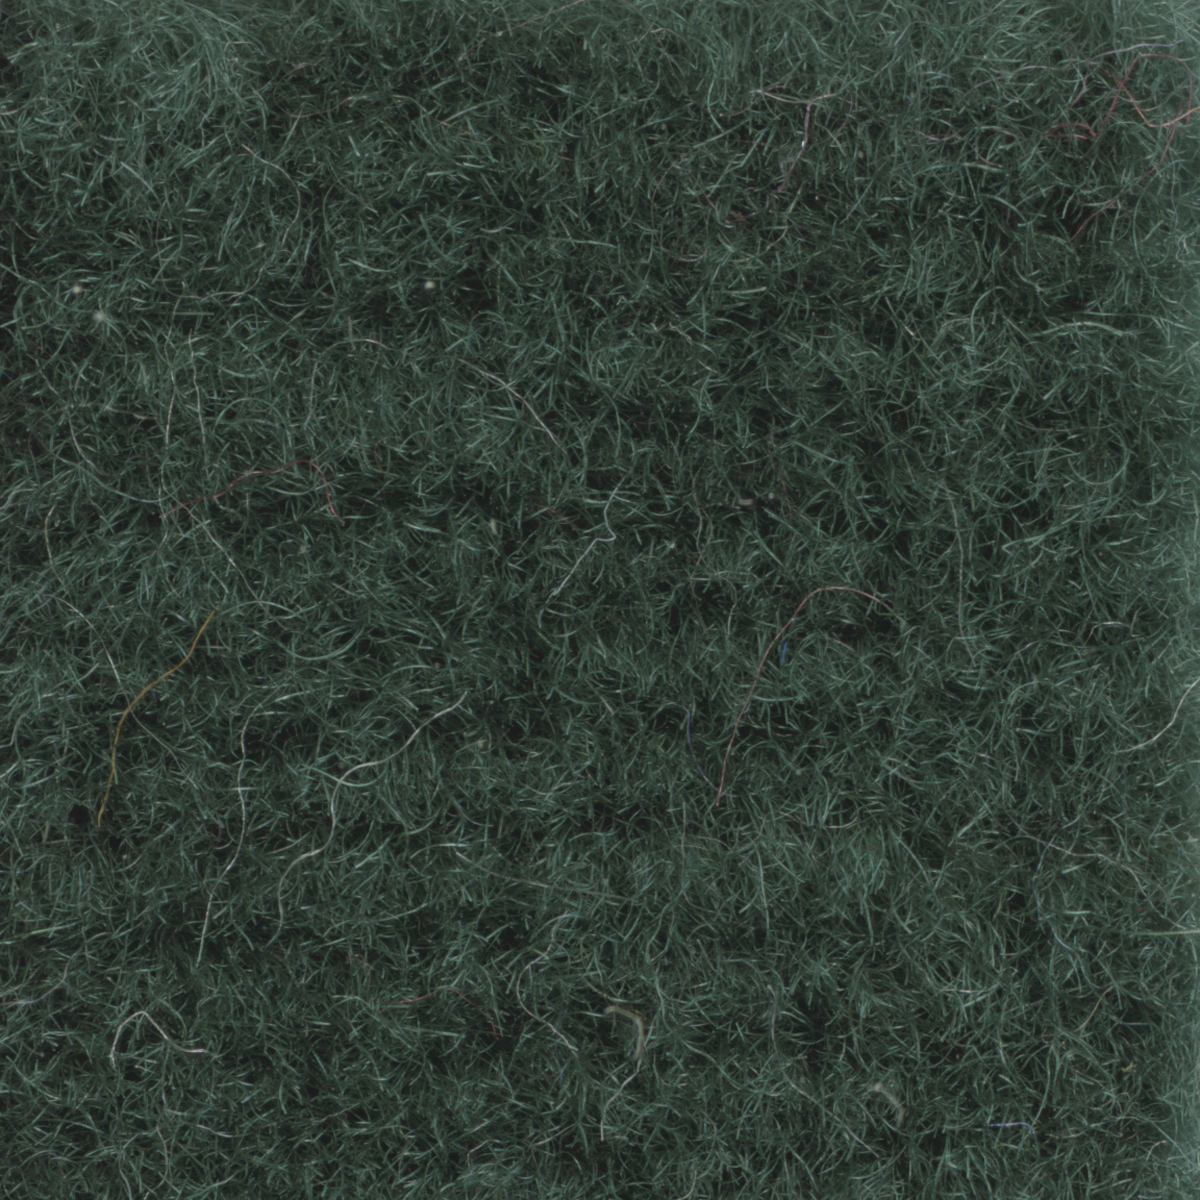 DK GREEN ENGLISH WILTON II WOOL CARPET 50